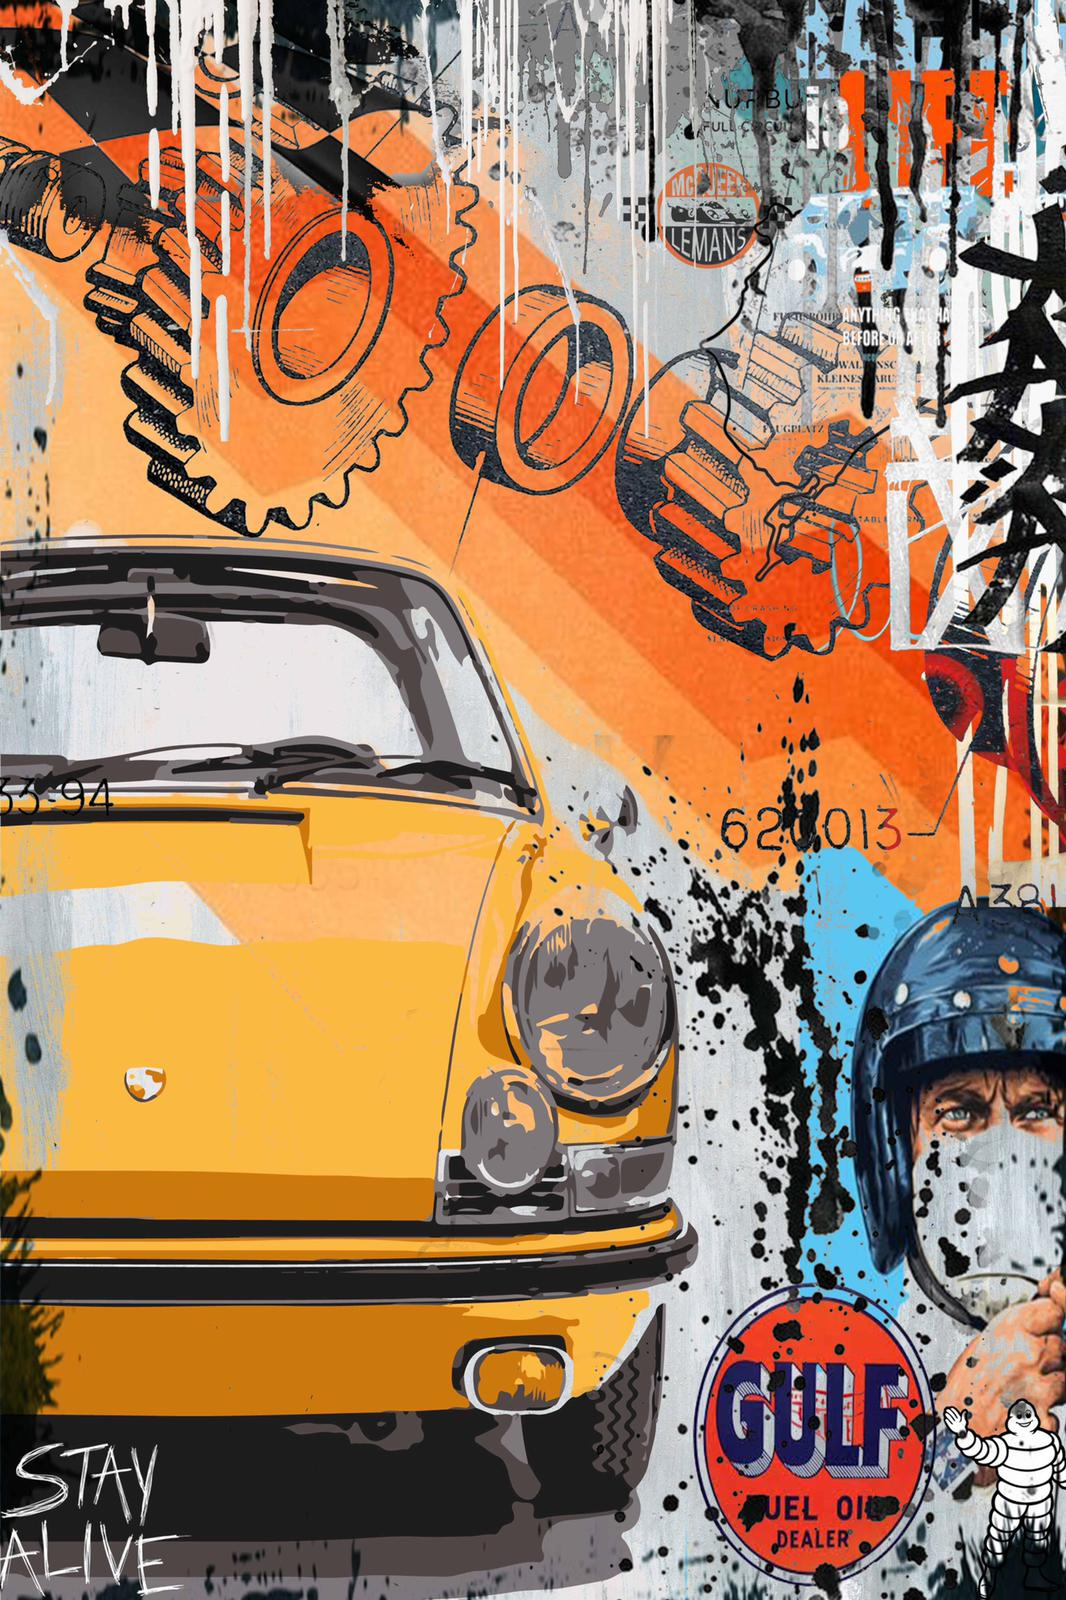 Tableau Yellow Porsche - Stay alive